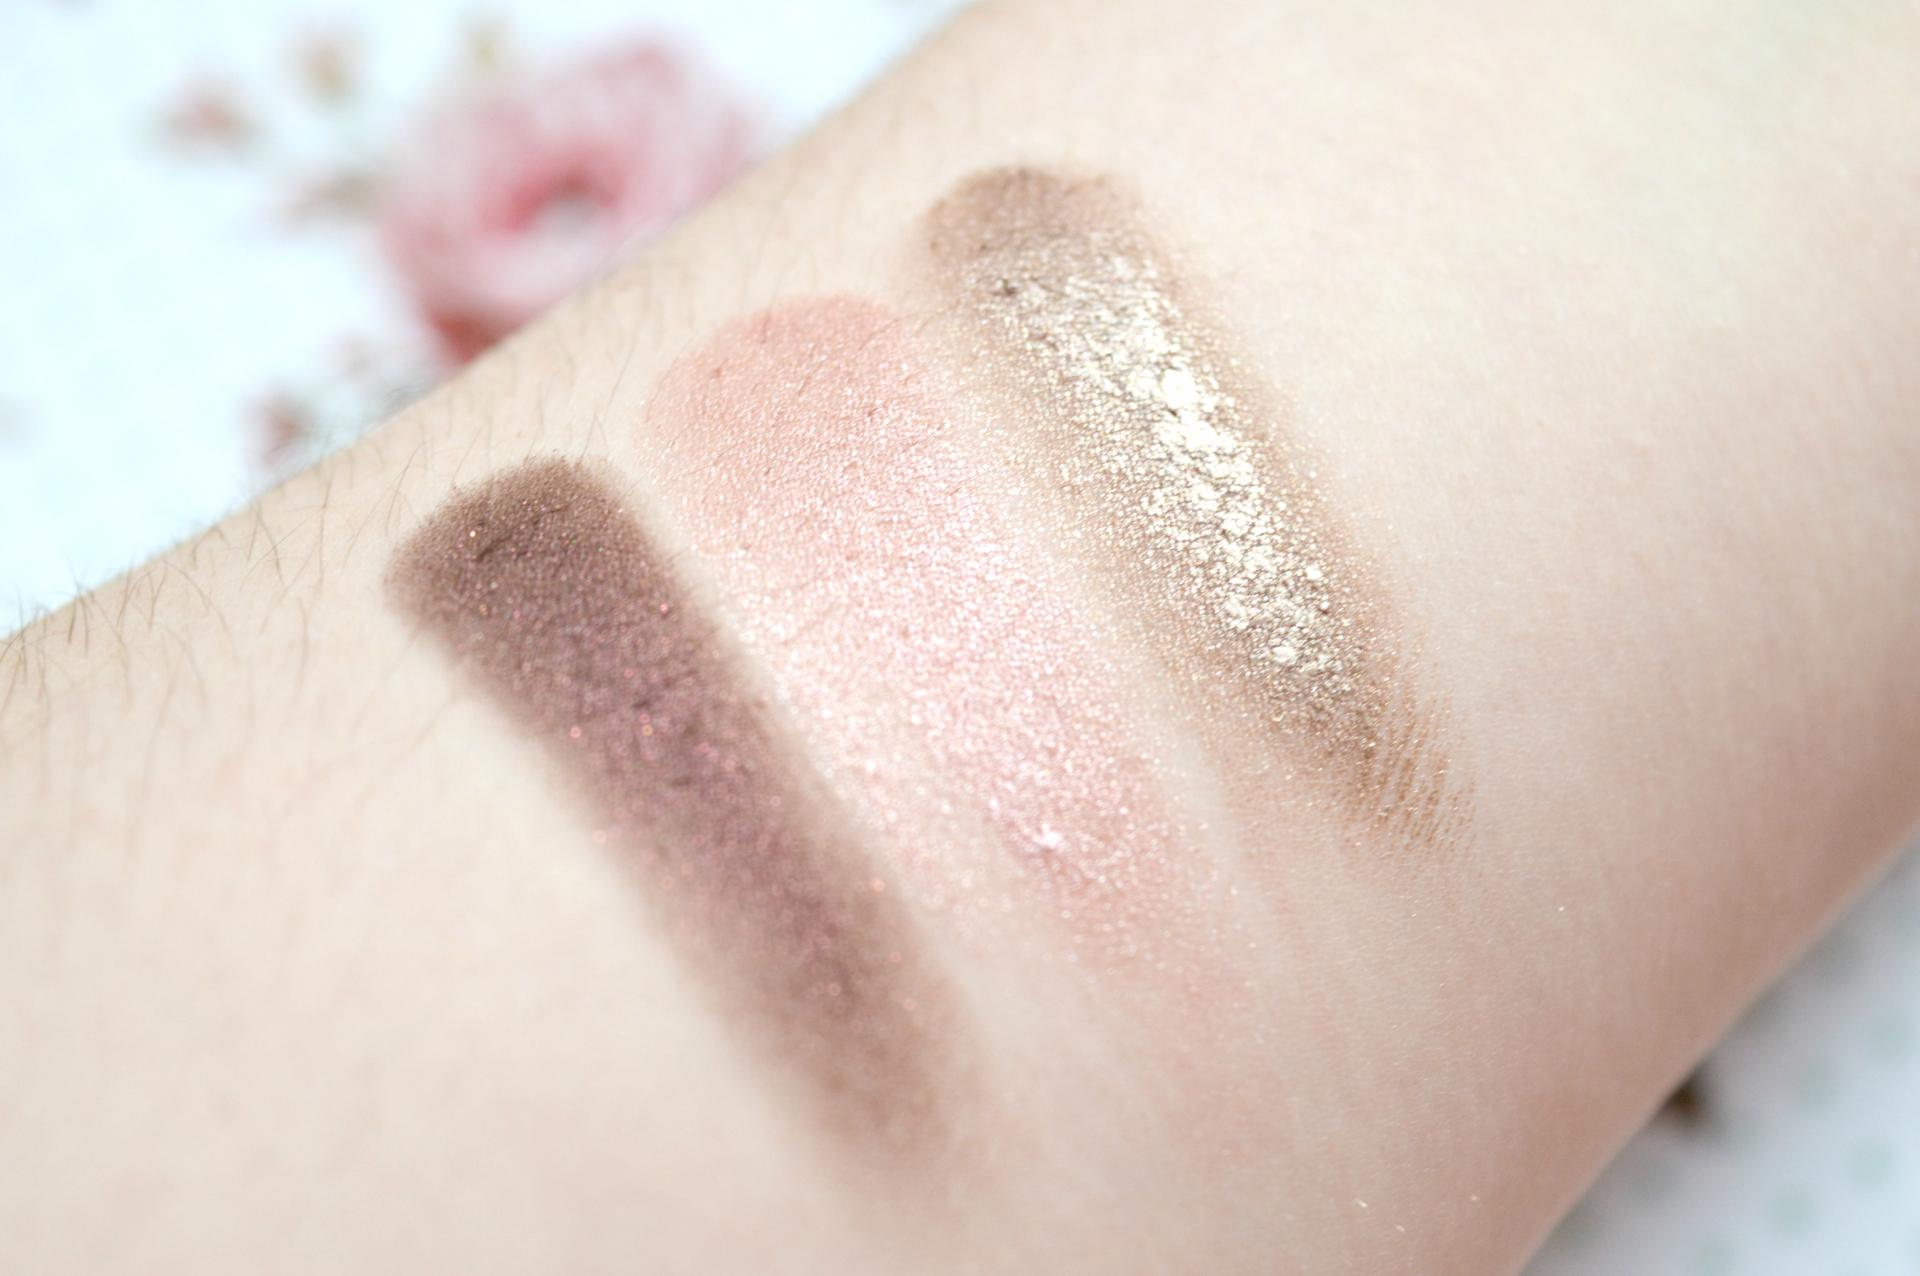 3 Excellent Cream Eyeshadows Worth Checking Out | Bourjois 24H Color Edition Cream to Powder Eyeshadow in Prune Nocturne, Maybelline Color Tattoo in Pink Gold and Maybelline Color Tattoo in On and On Bronze Swatches